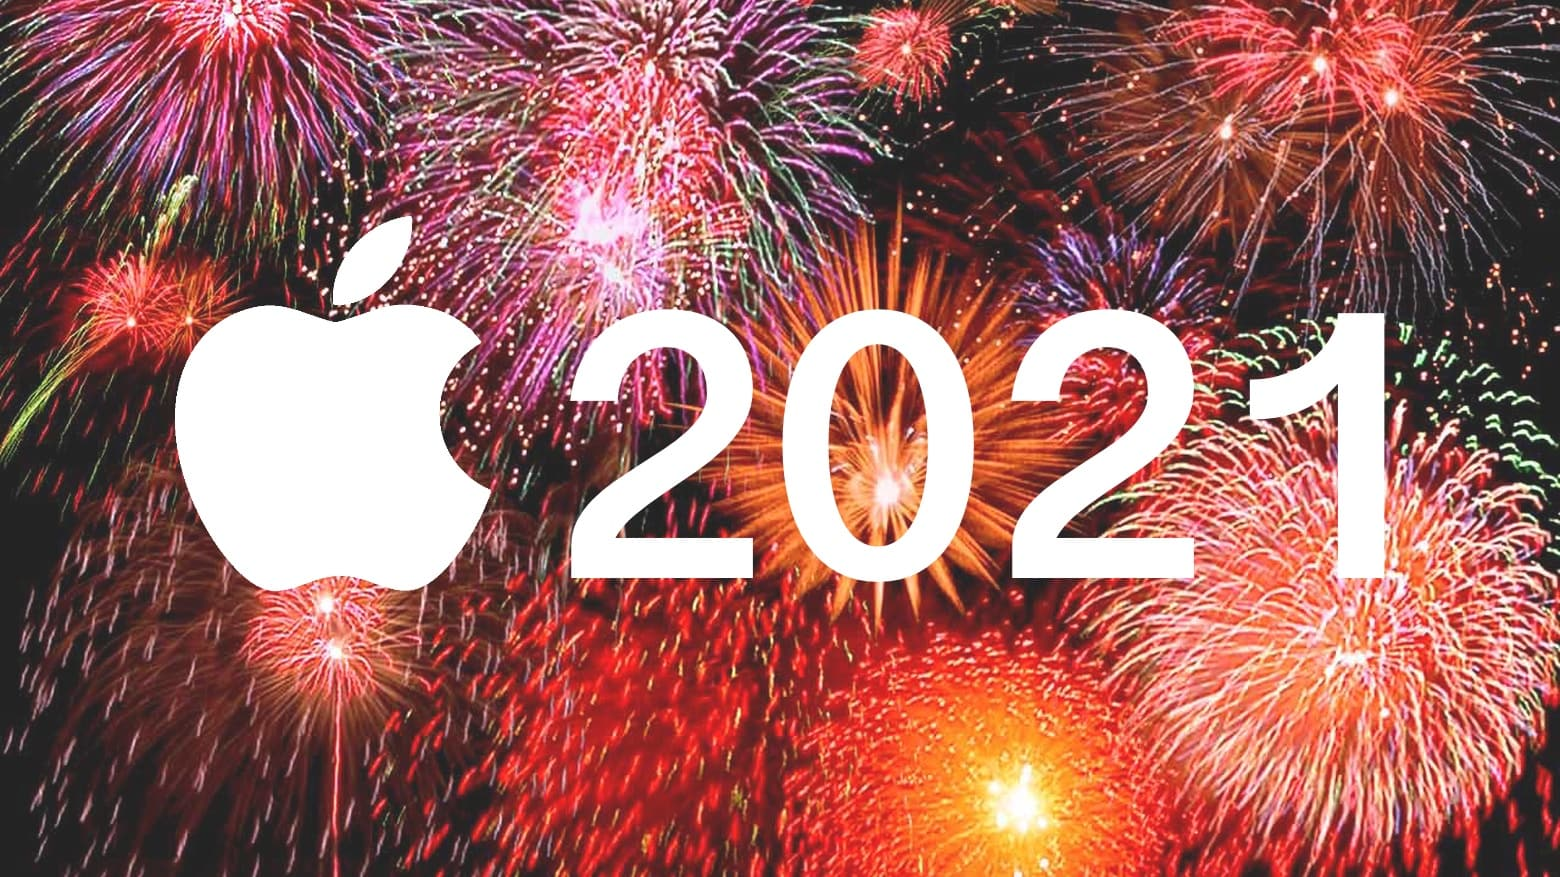 Expect exciting new MacBooks, iPad, Apple Watch and more in 2021